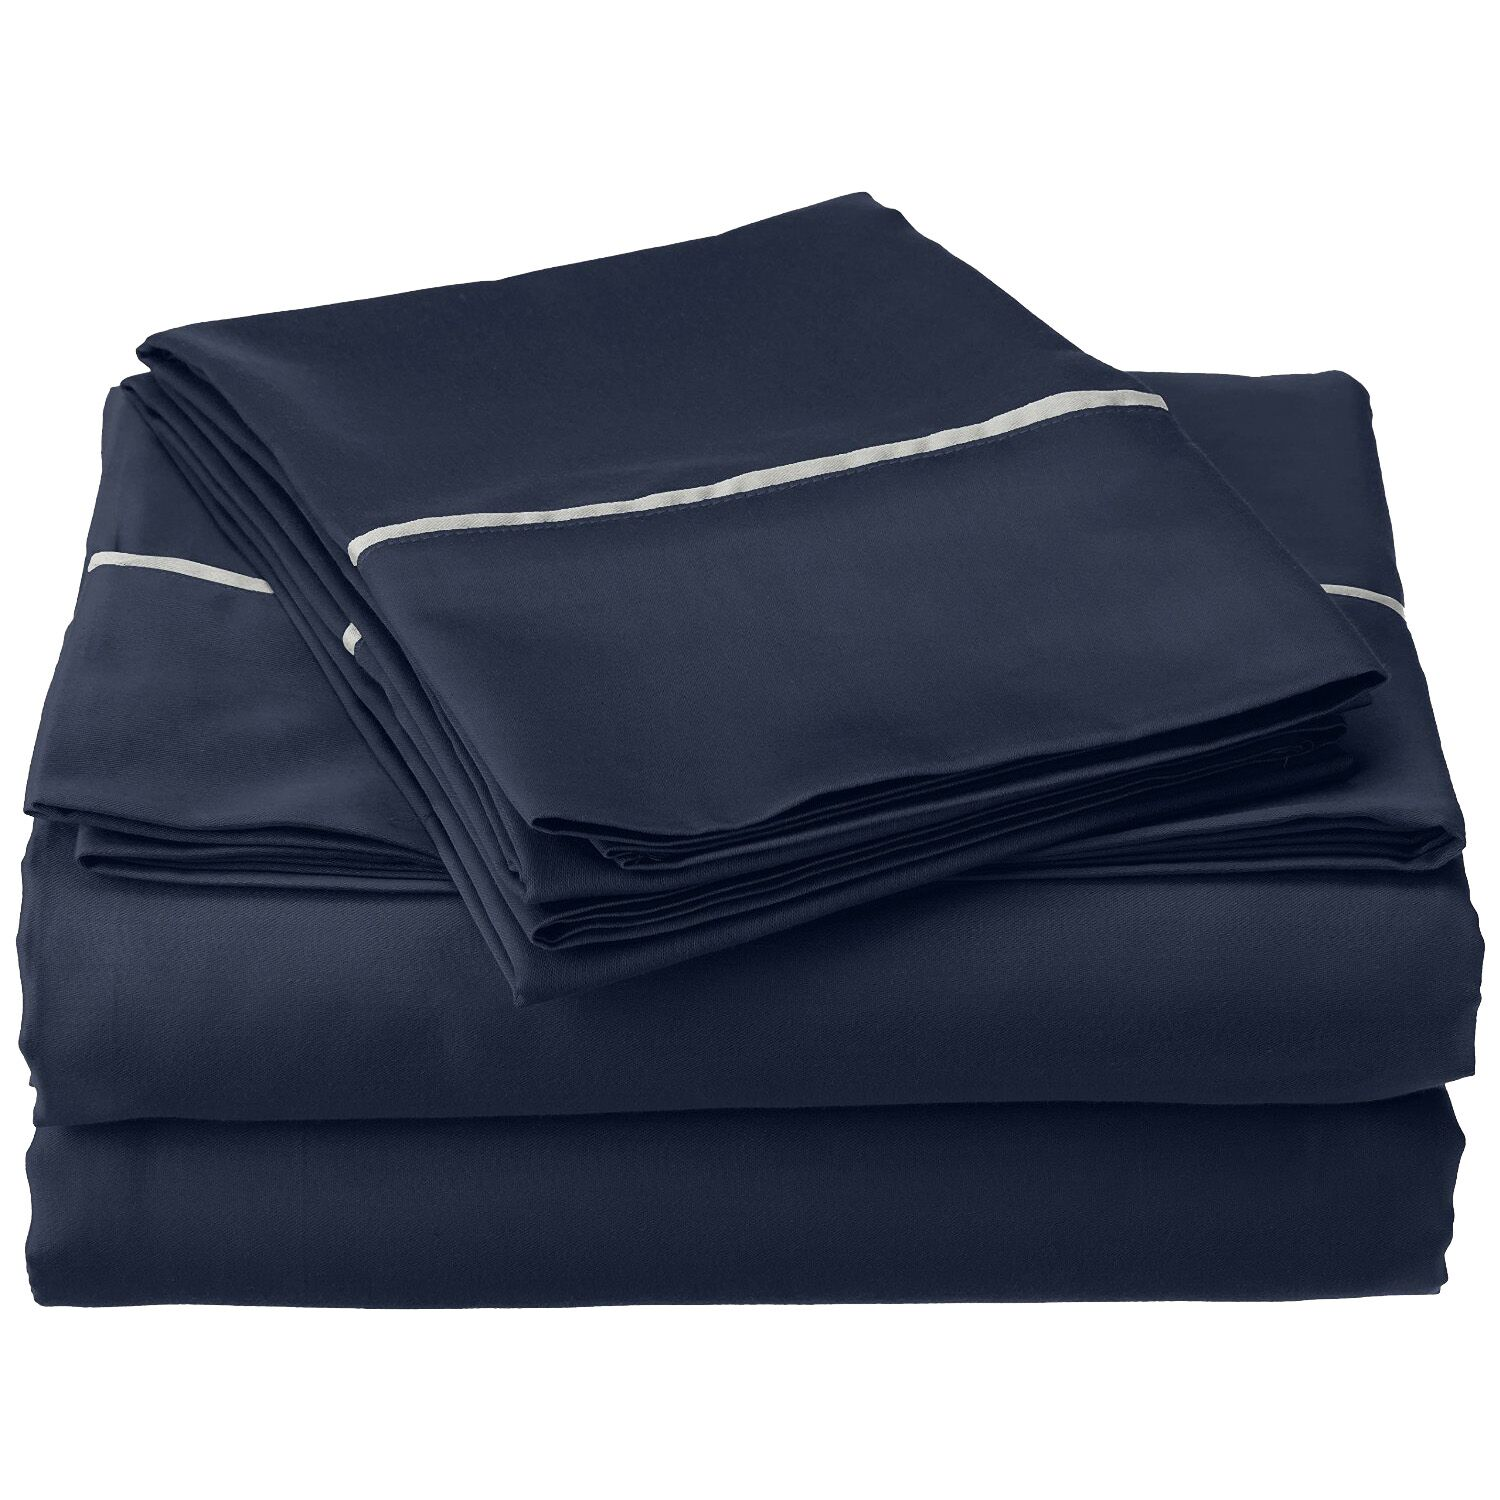 Bahama 600 Thread Count Sheet Set Color: Navy Blue with Silver Trim, Size: California King